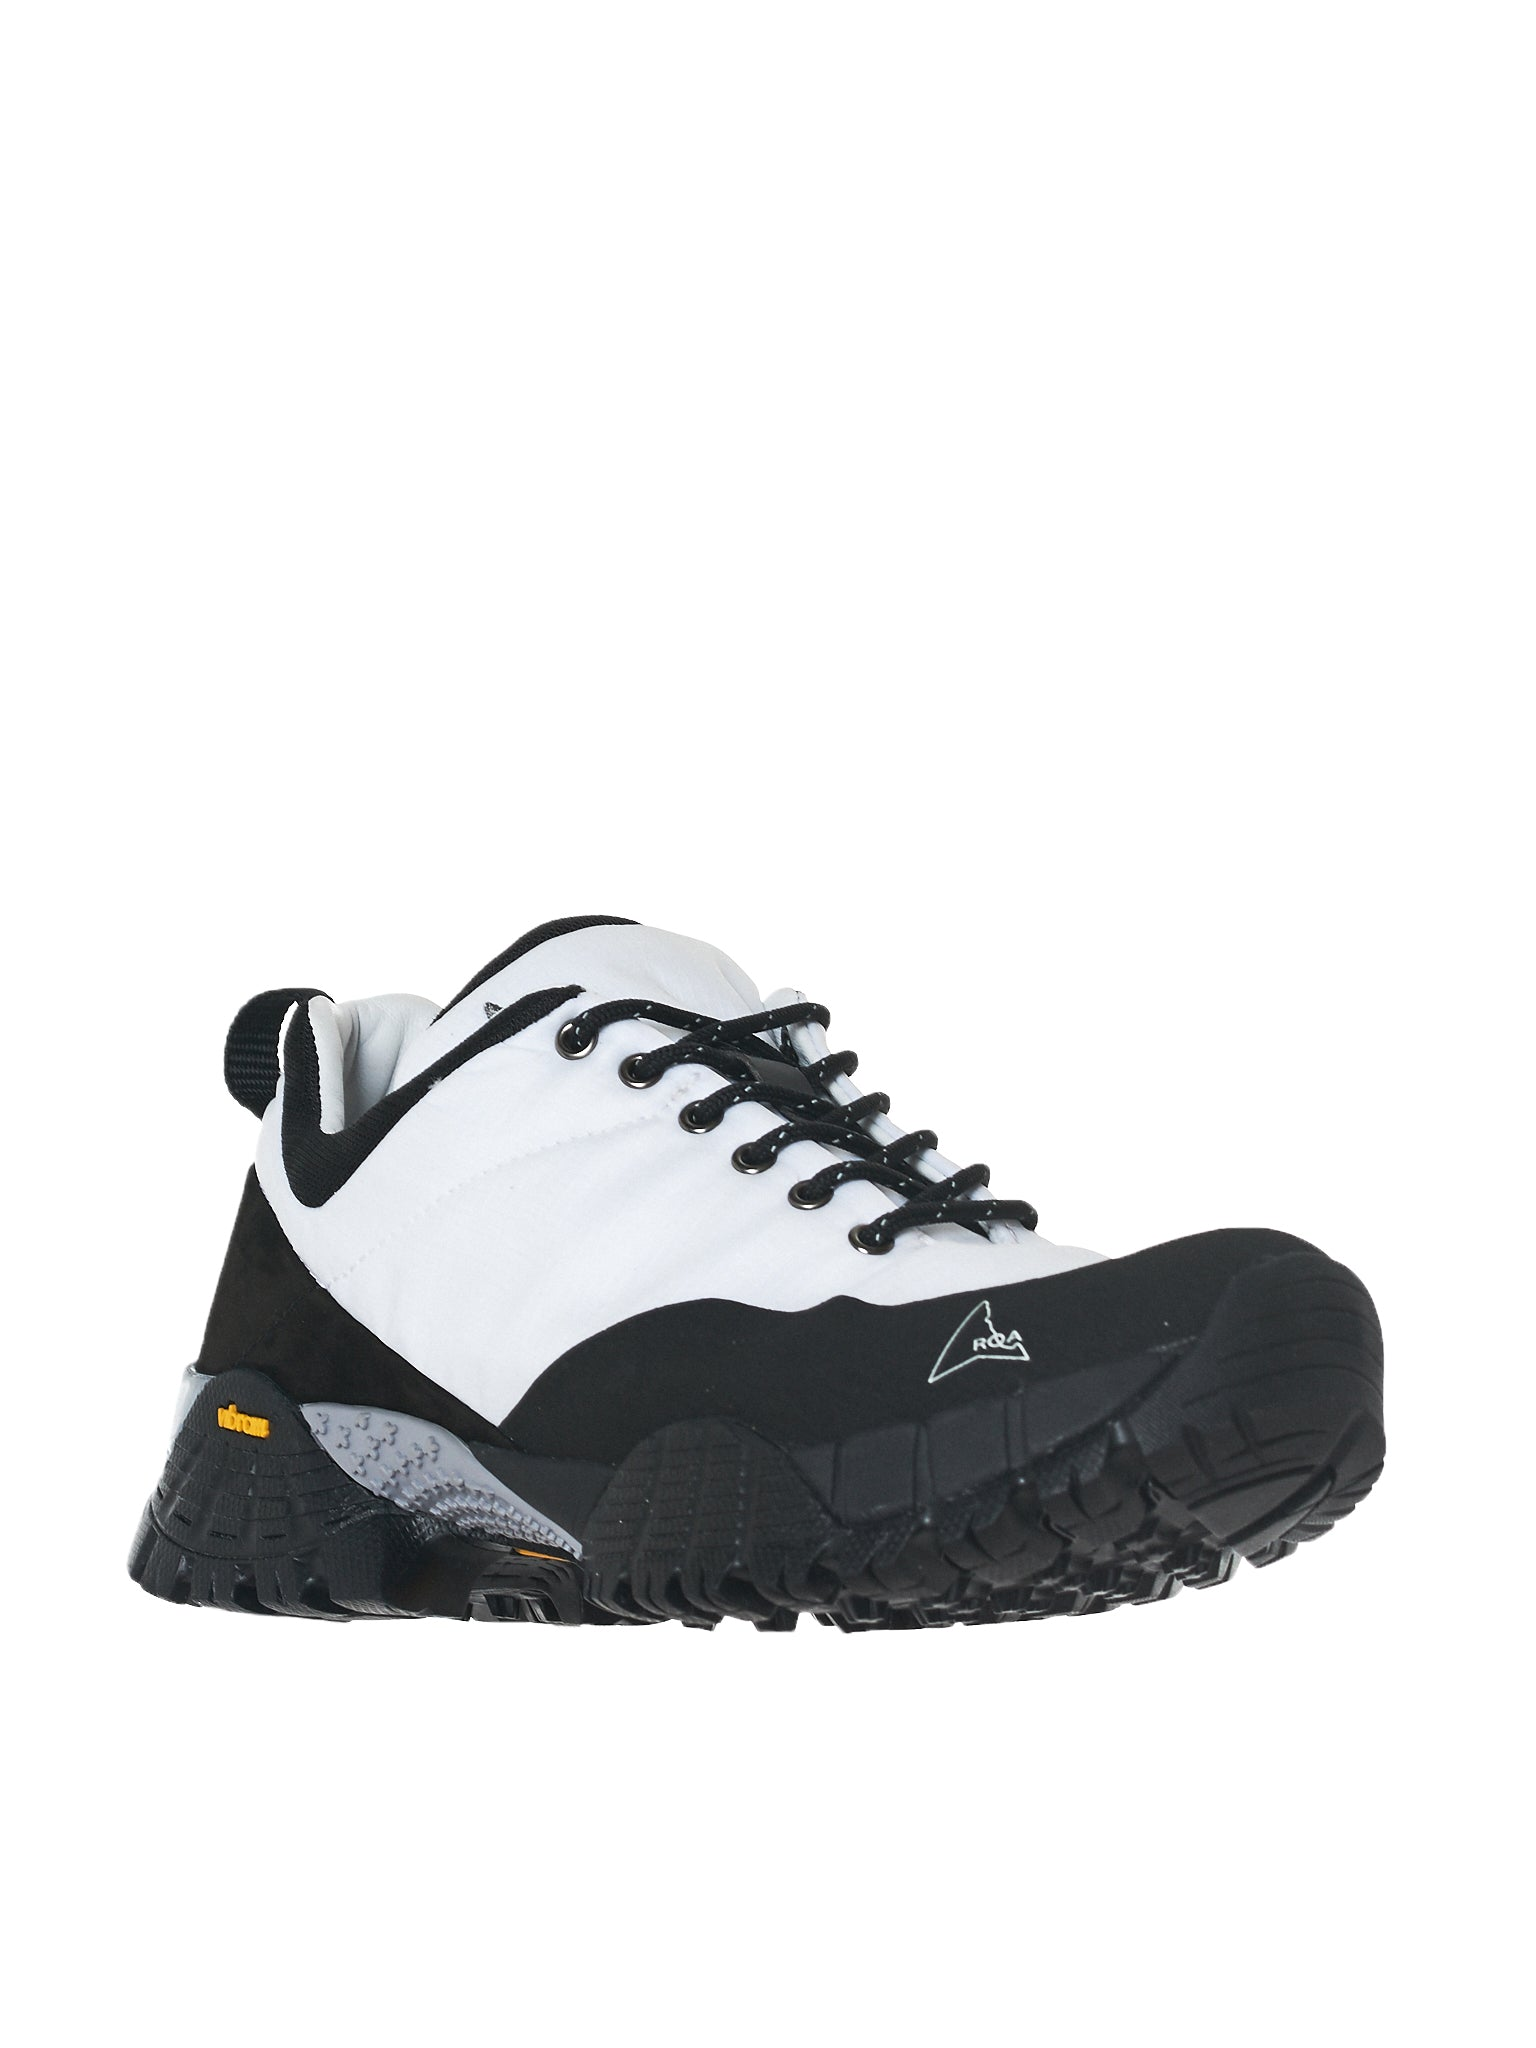 Roa Hiking Sneakers - Hlorenzo Side